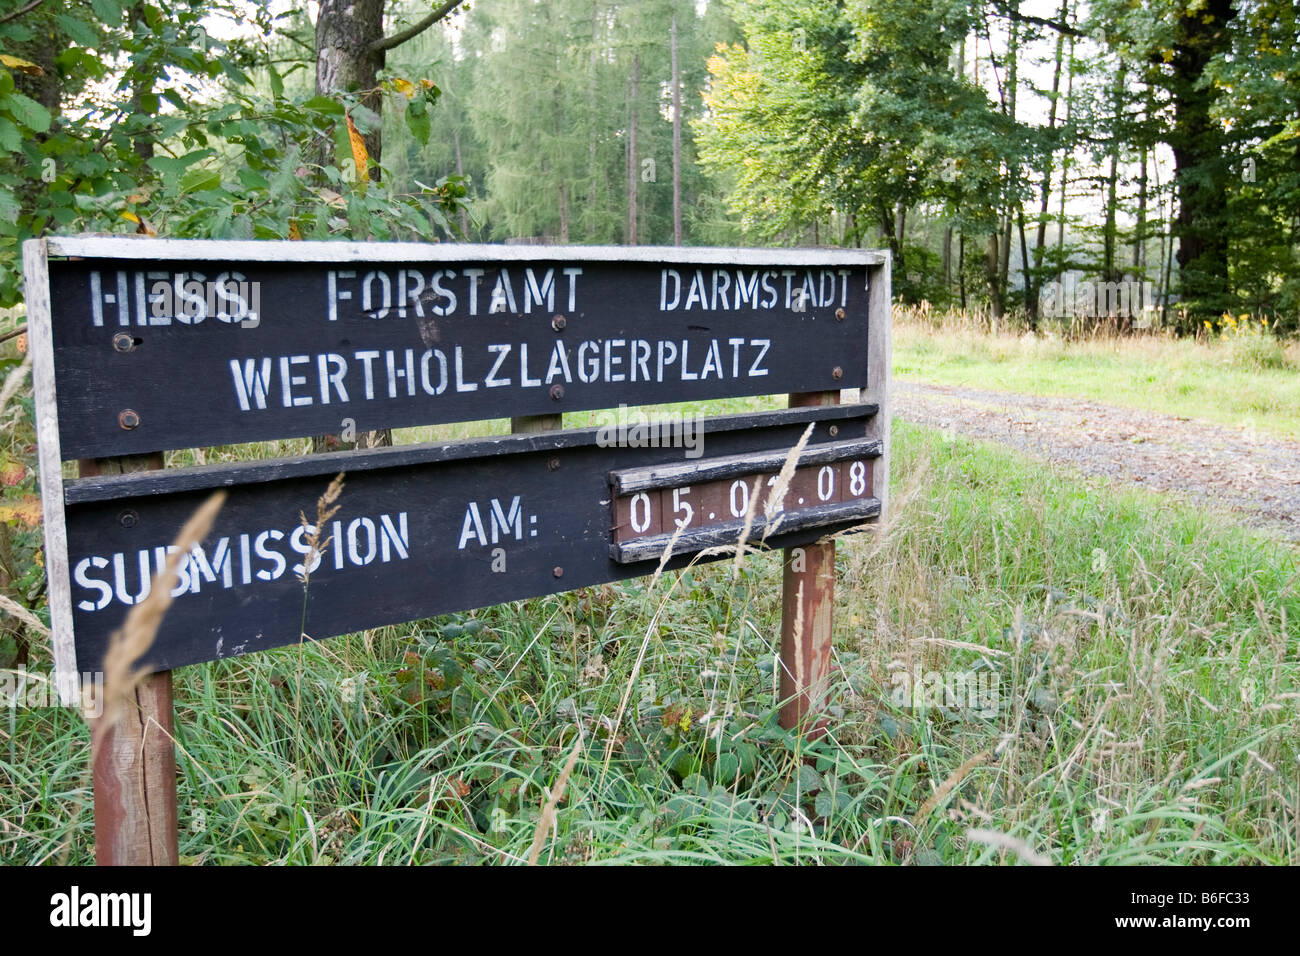 Hessian forestry office's lumber yard information sign, Hesse, Germany, Europe - Stock Image